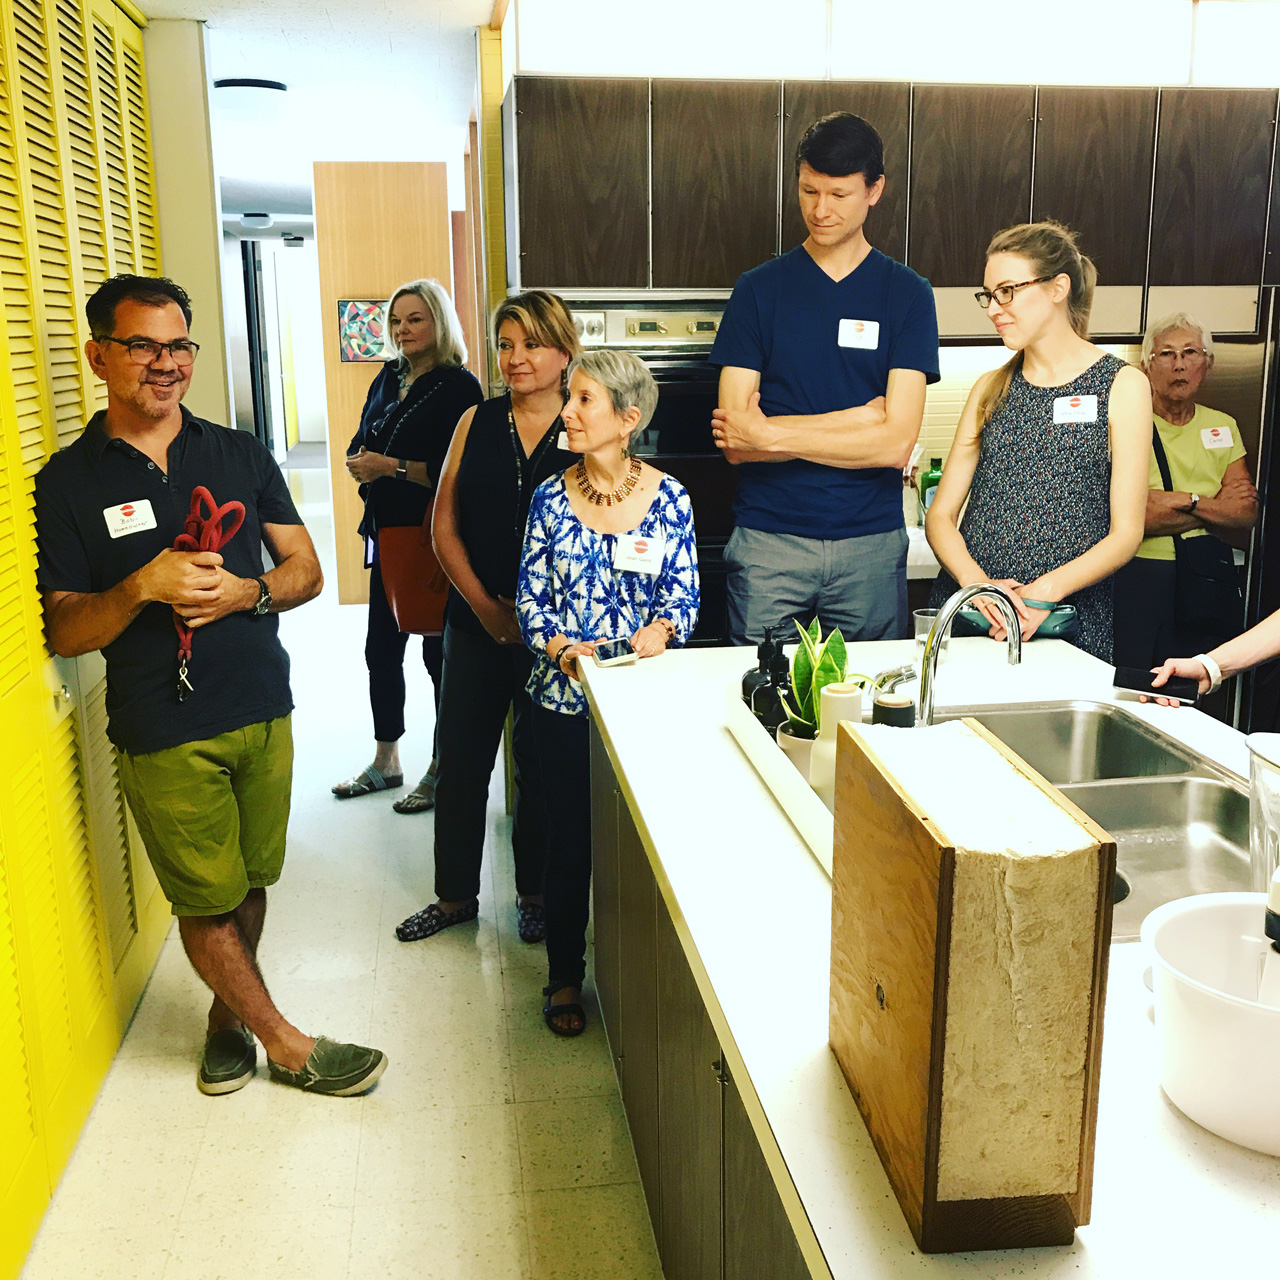 CBB's tour of the Frost House